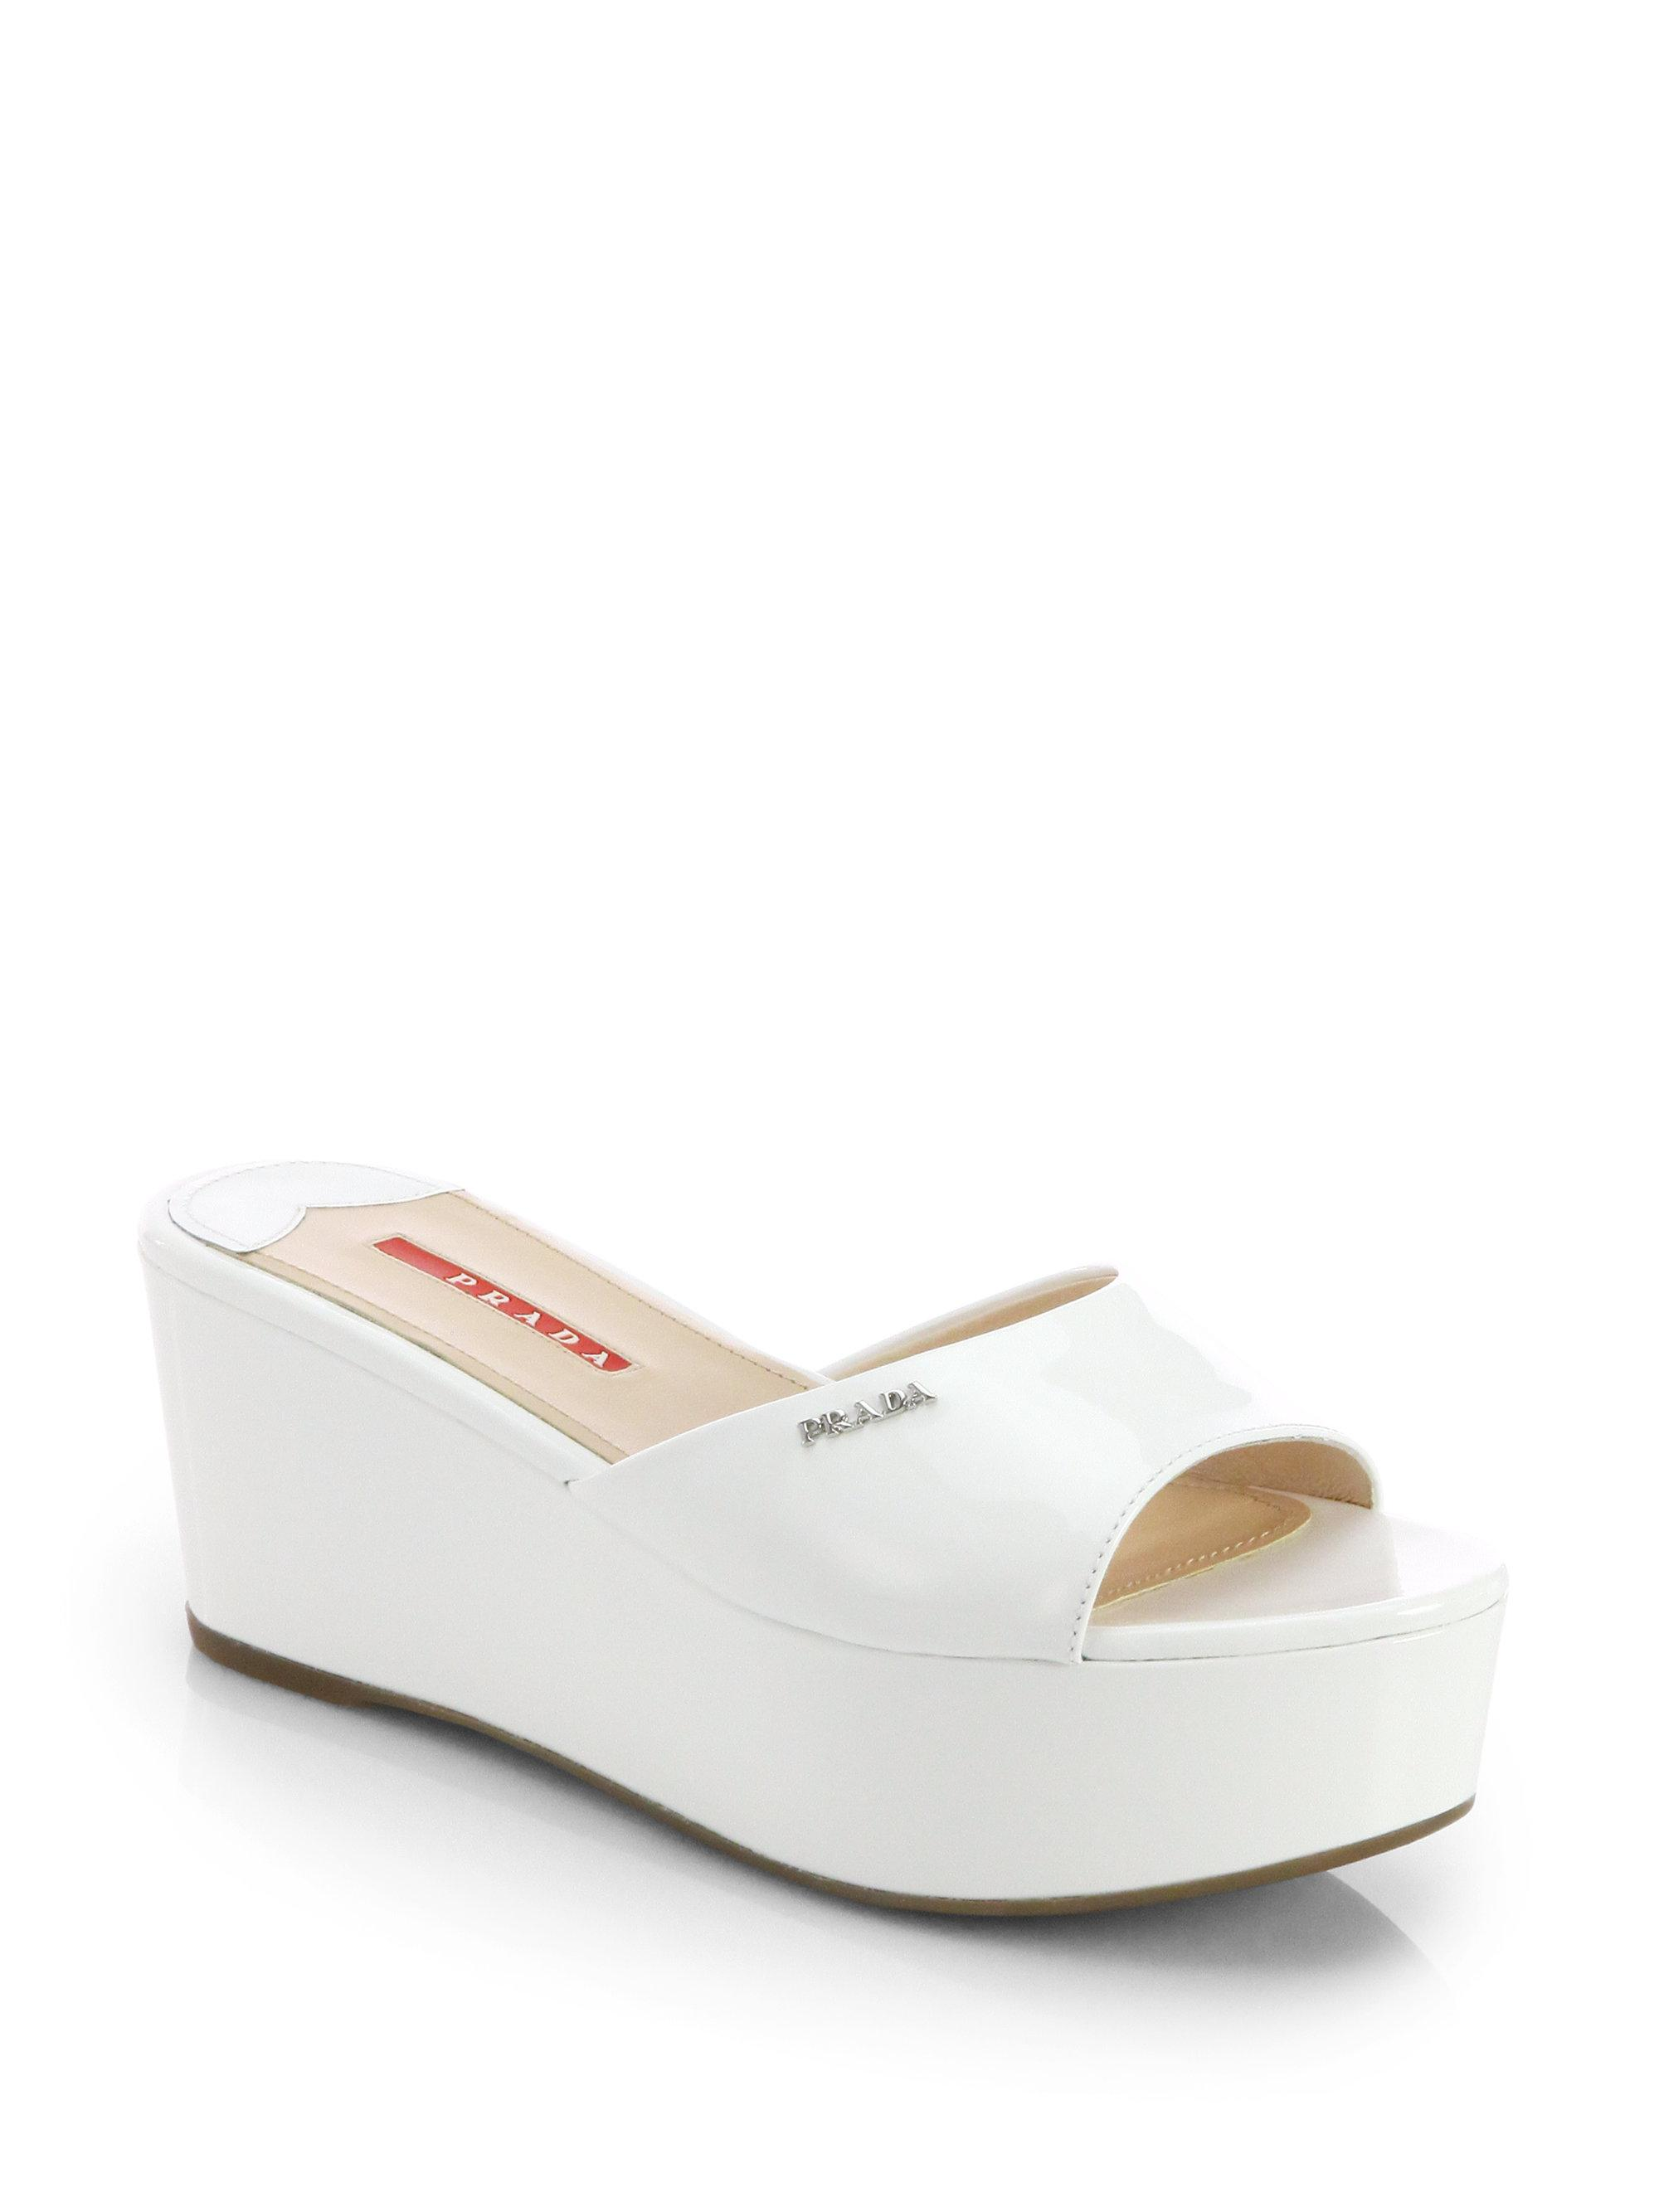 store online Prada Patent Leather Slide Sandals best wholesale cheap price outlet geniue stockist manchester great sale cheap price XoGjstgn